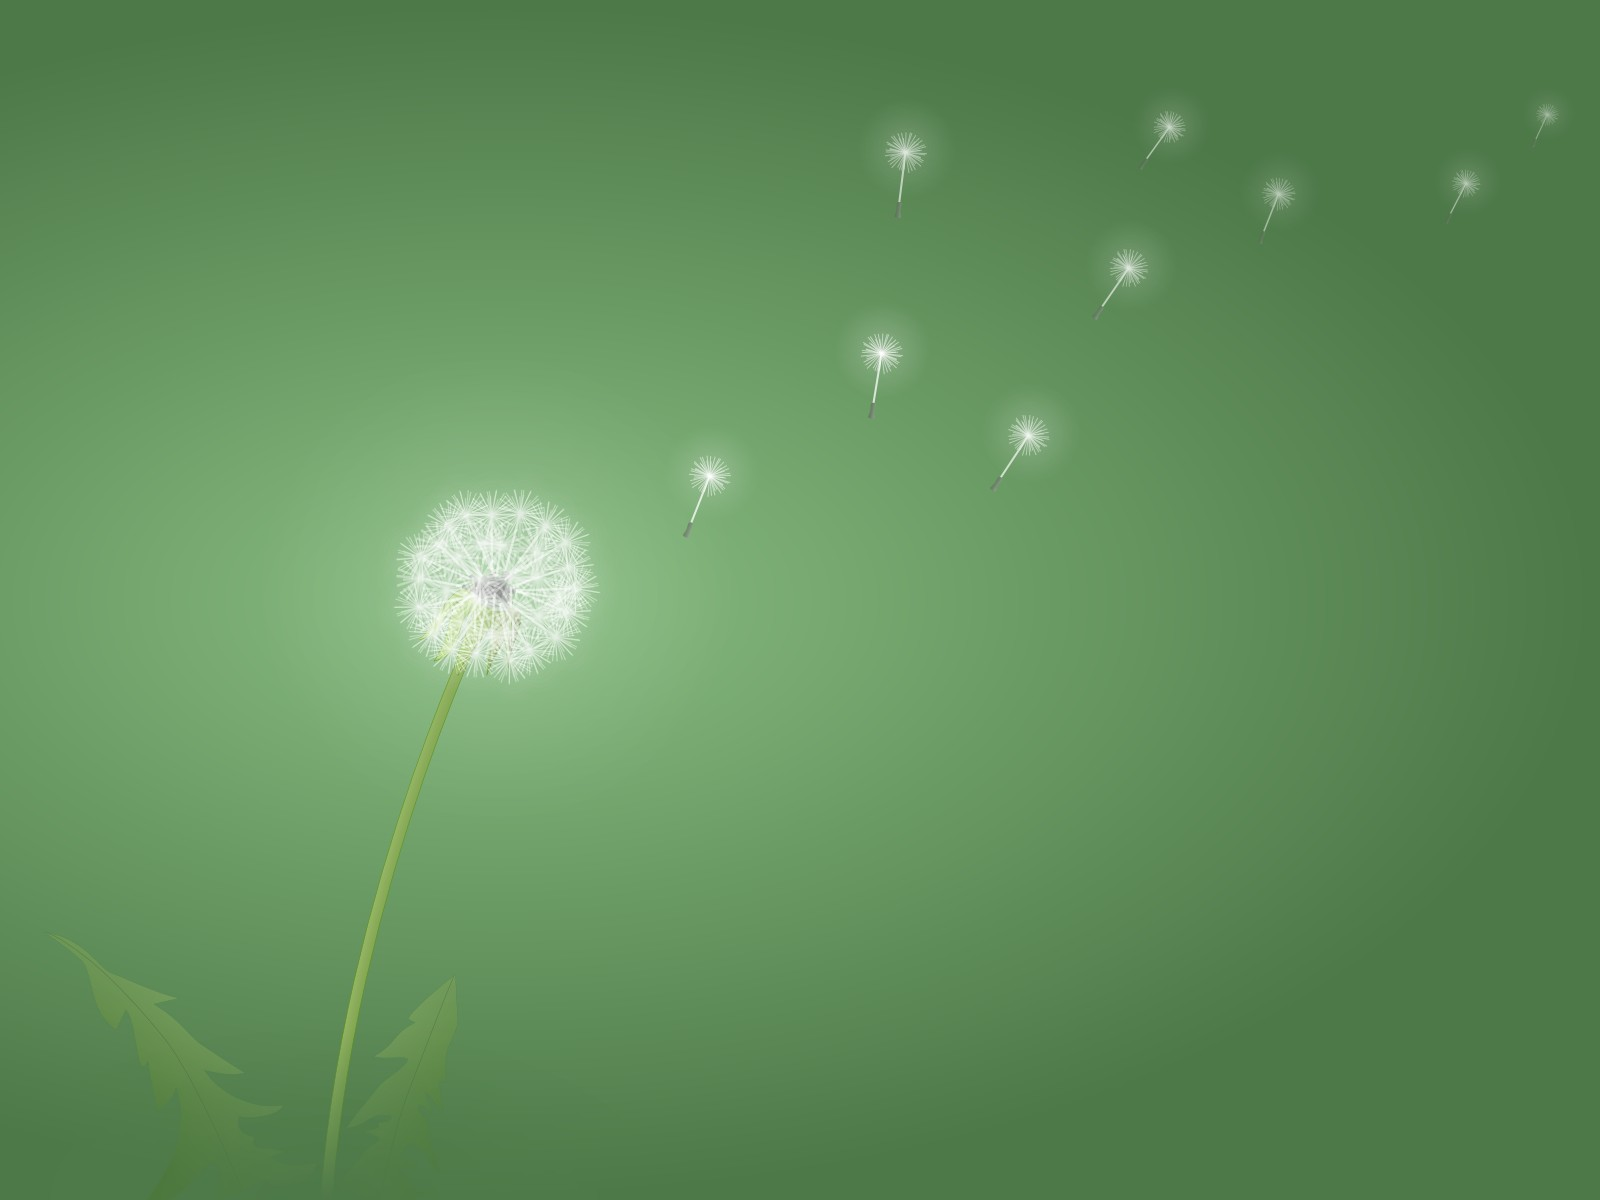 1600x1200 Dandelion desktop PC and Mac wallpaper 1600x1200